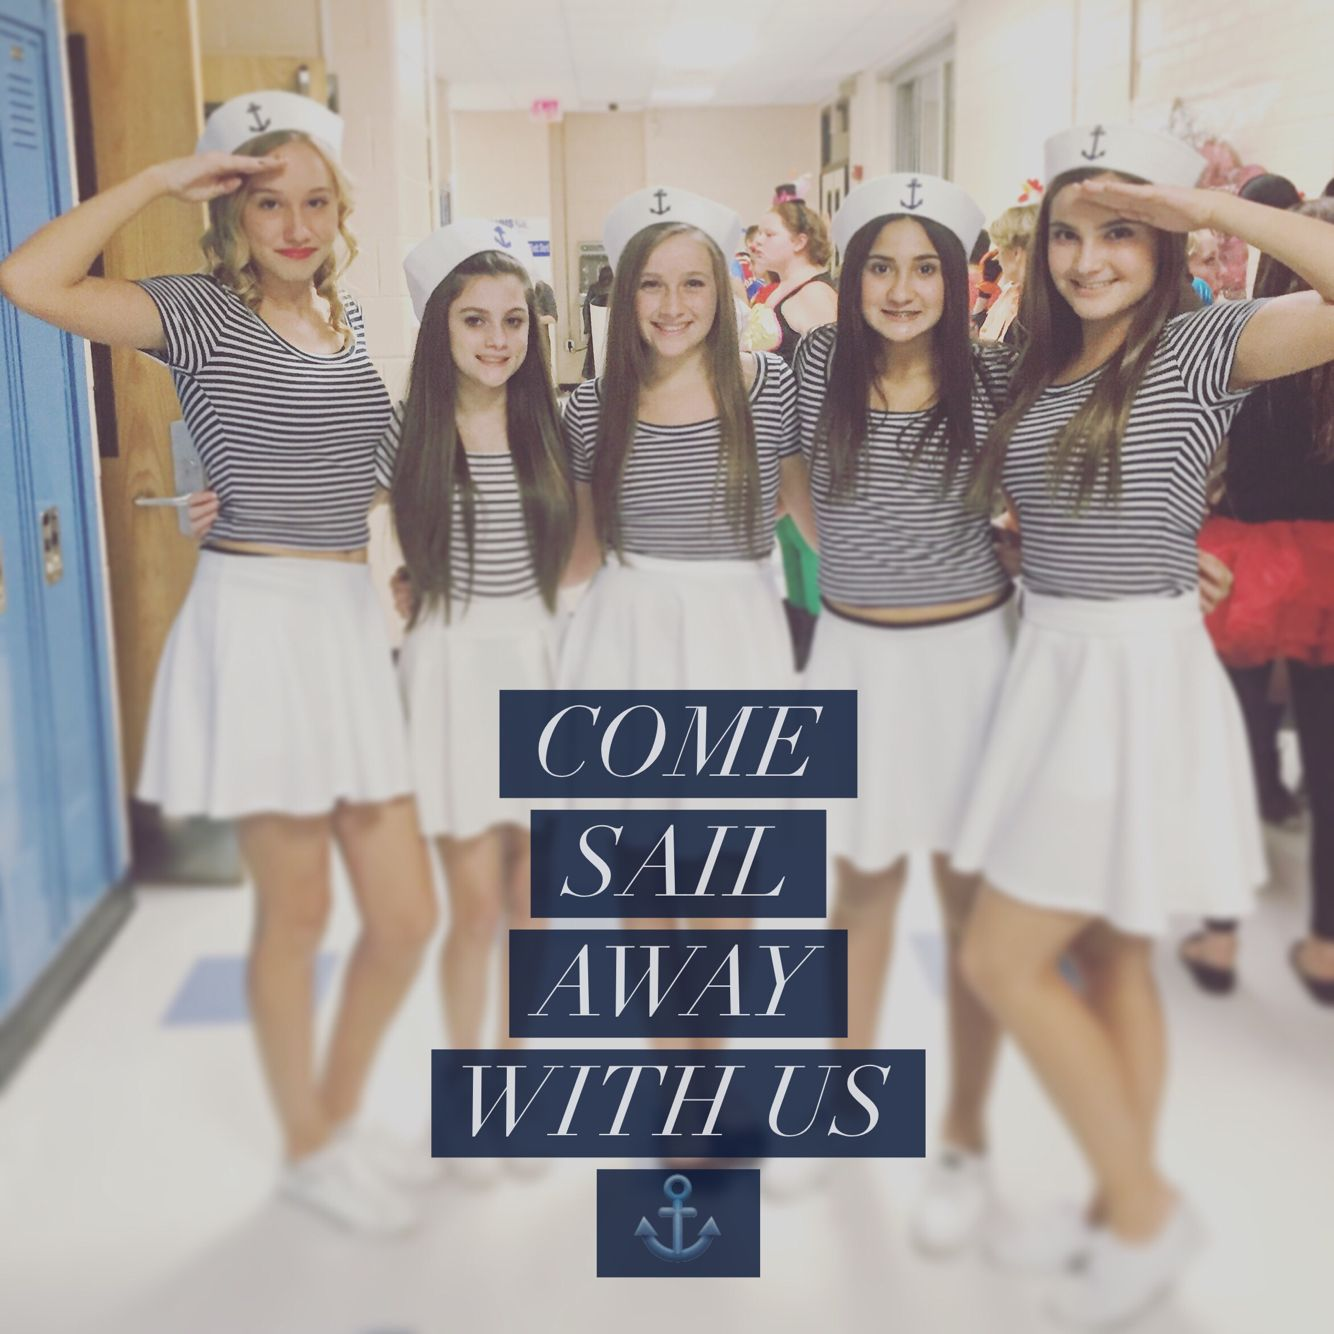 easy sailor costumes for teen girls diy halloween - Easy Homemade Halloween Costumes For Teenage Girl